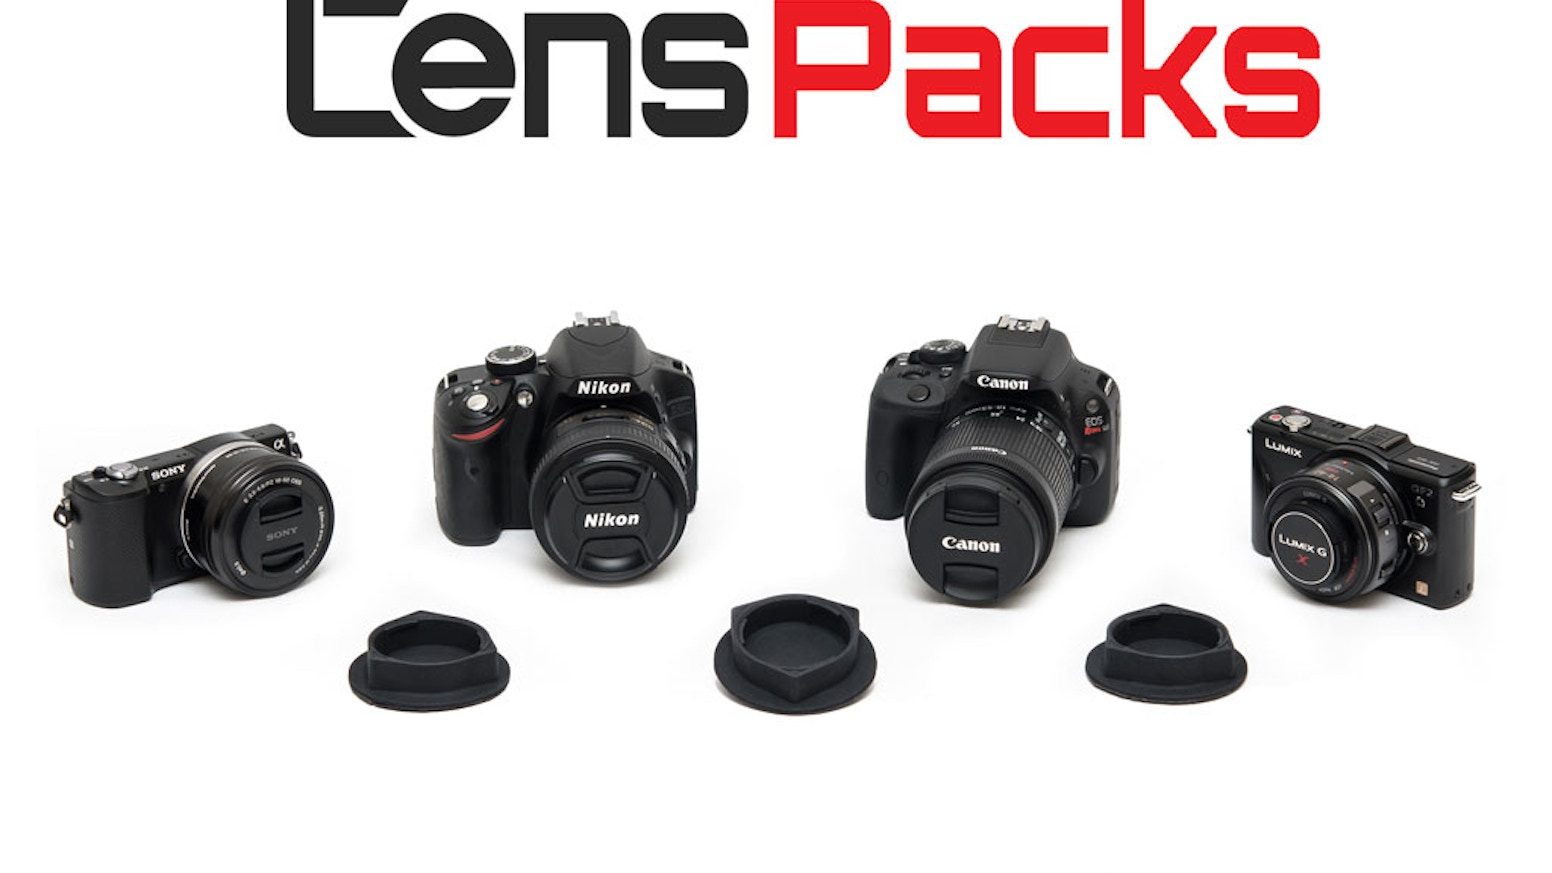 An innovative and easy-to-use Velcro lens cap system that allows for quick camera lens changes.